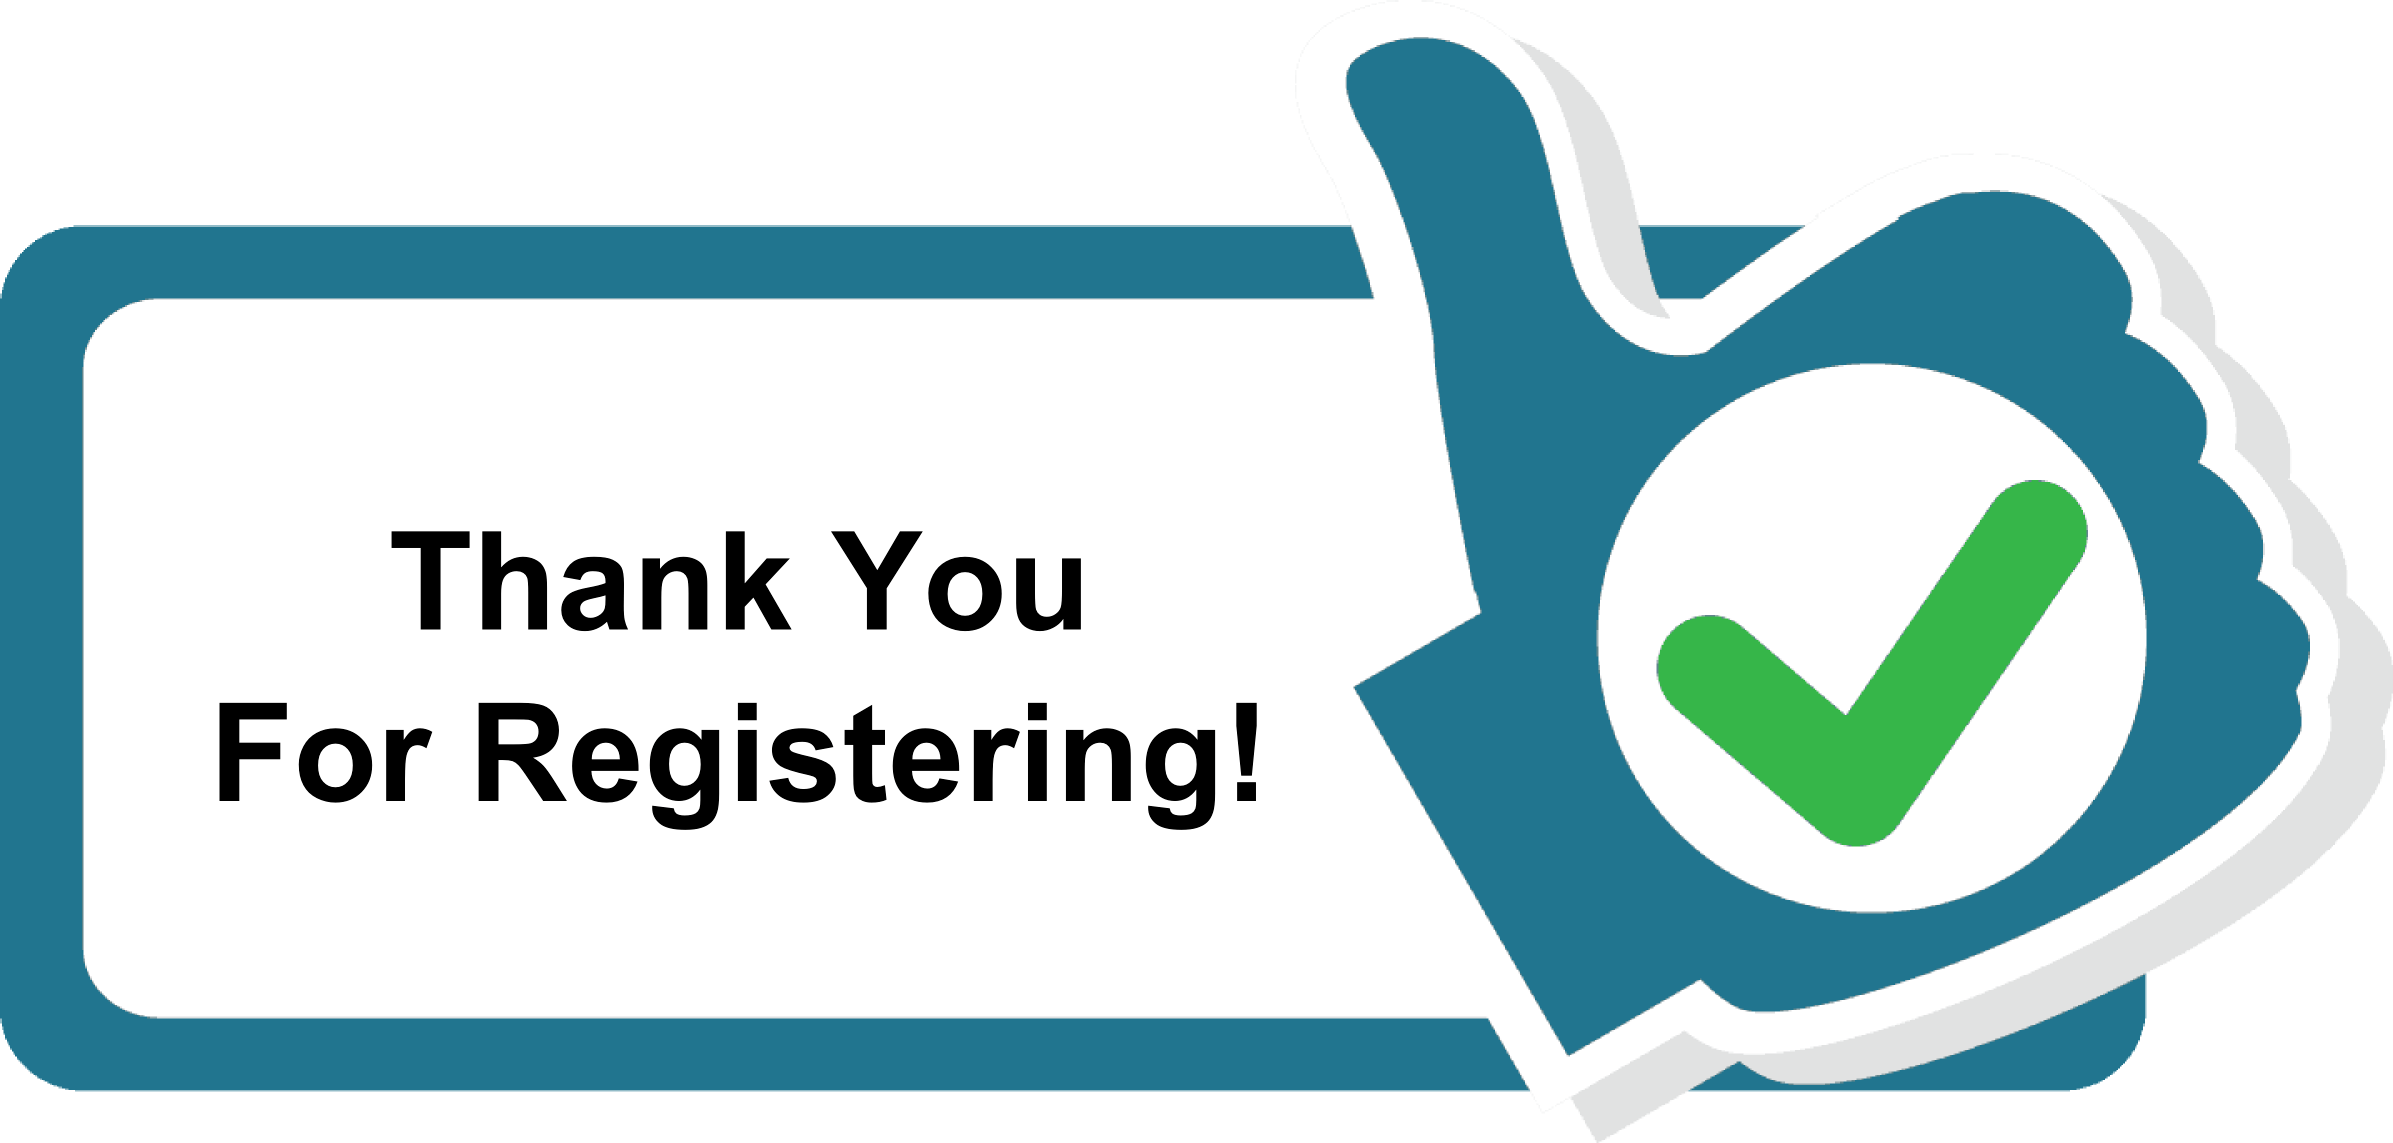 Thank you for registering